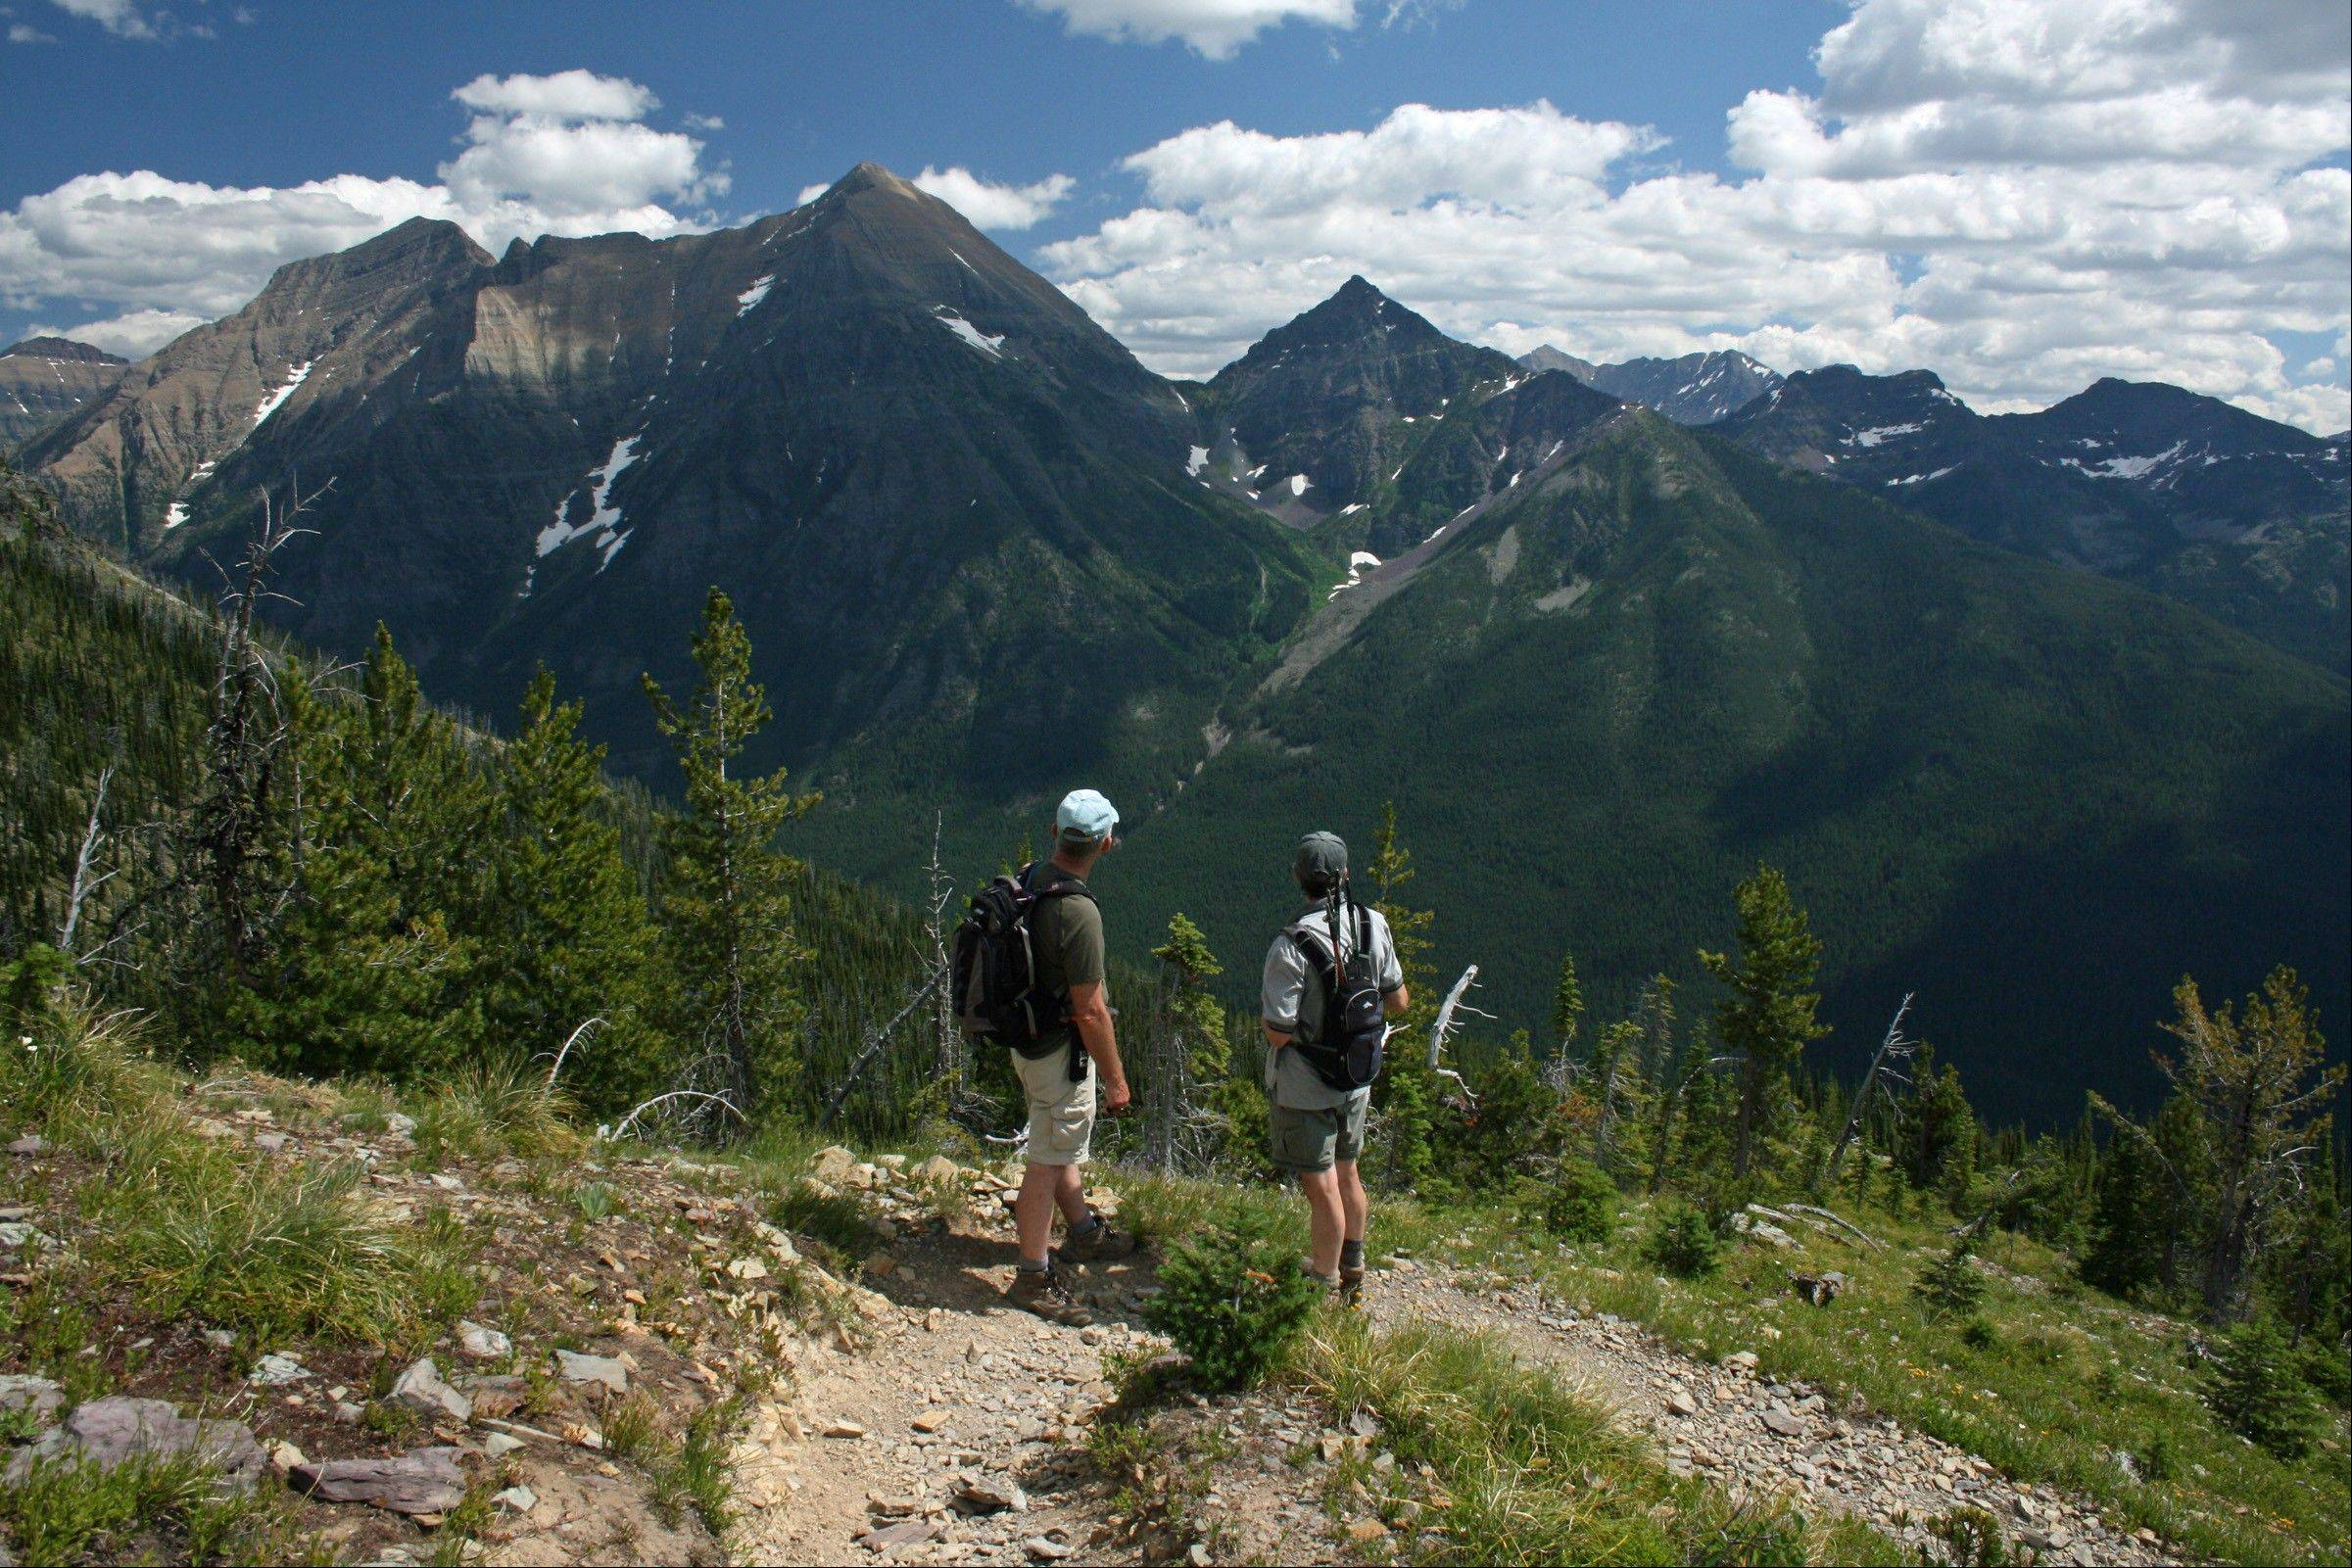 Hikers pause on the trail to Numa Ridge in the North Fork, a remote section of the park.